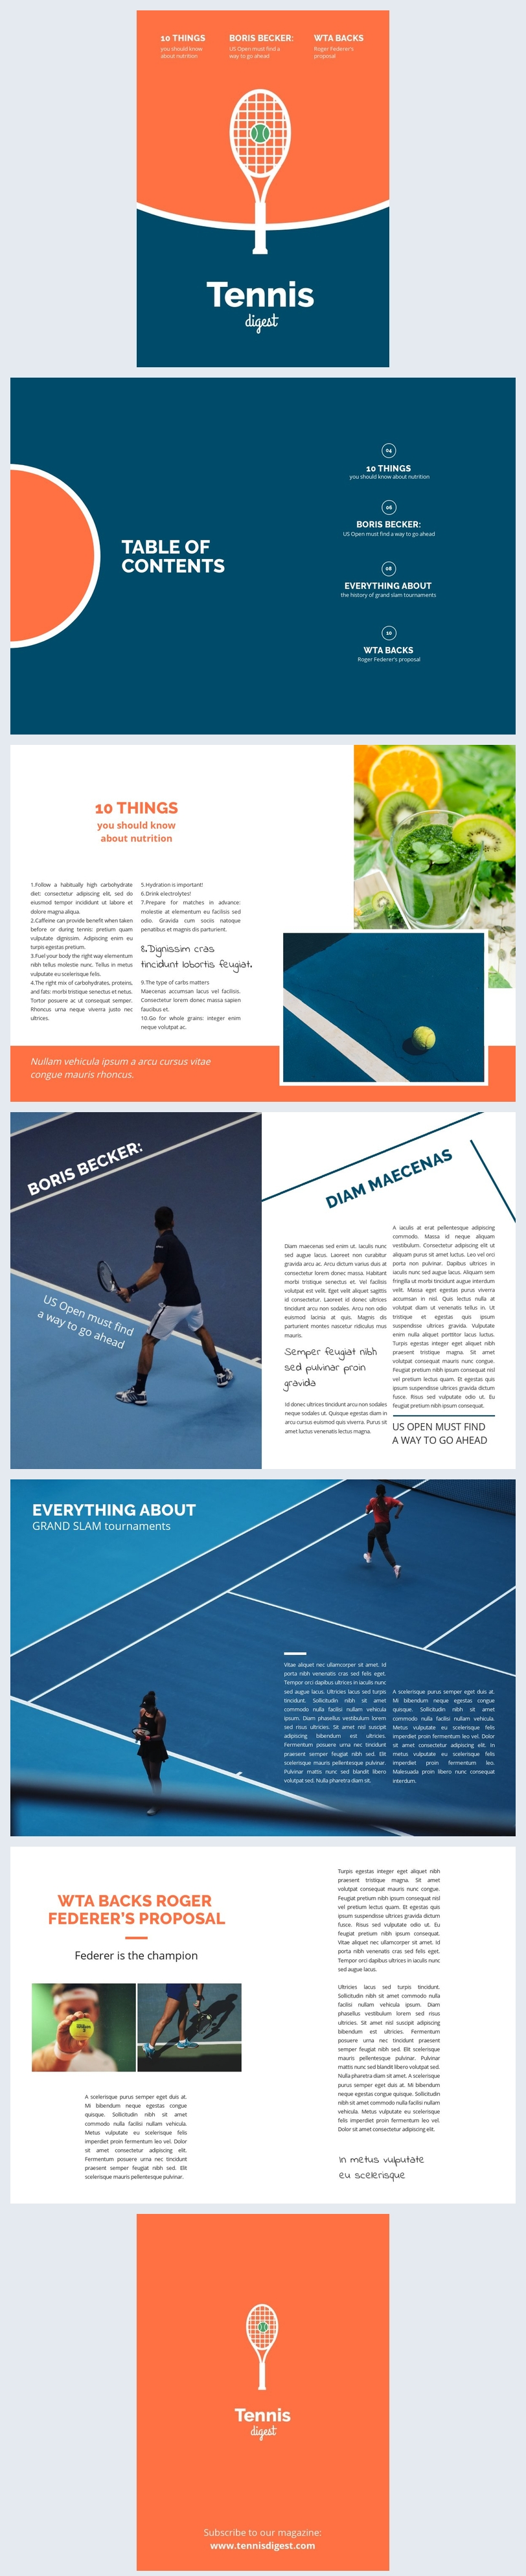 Sports Magazine Layout Example